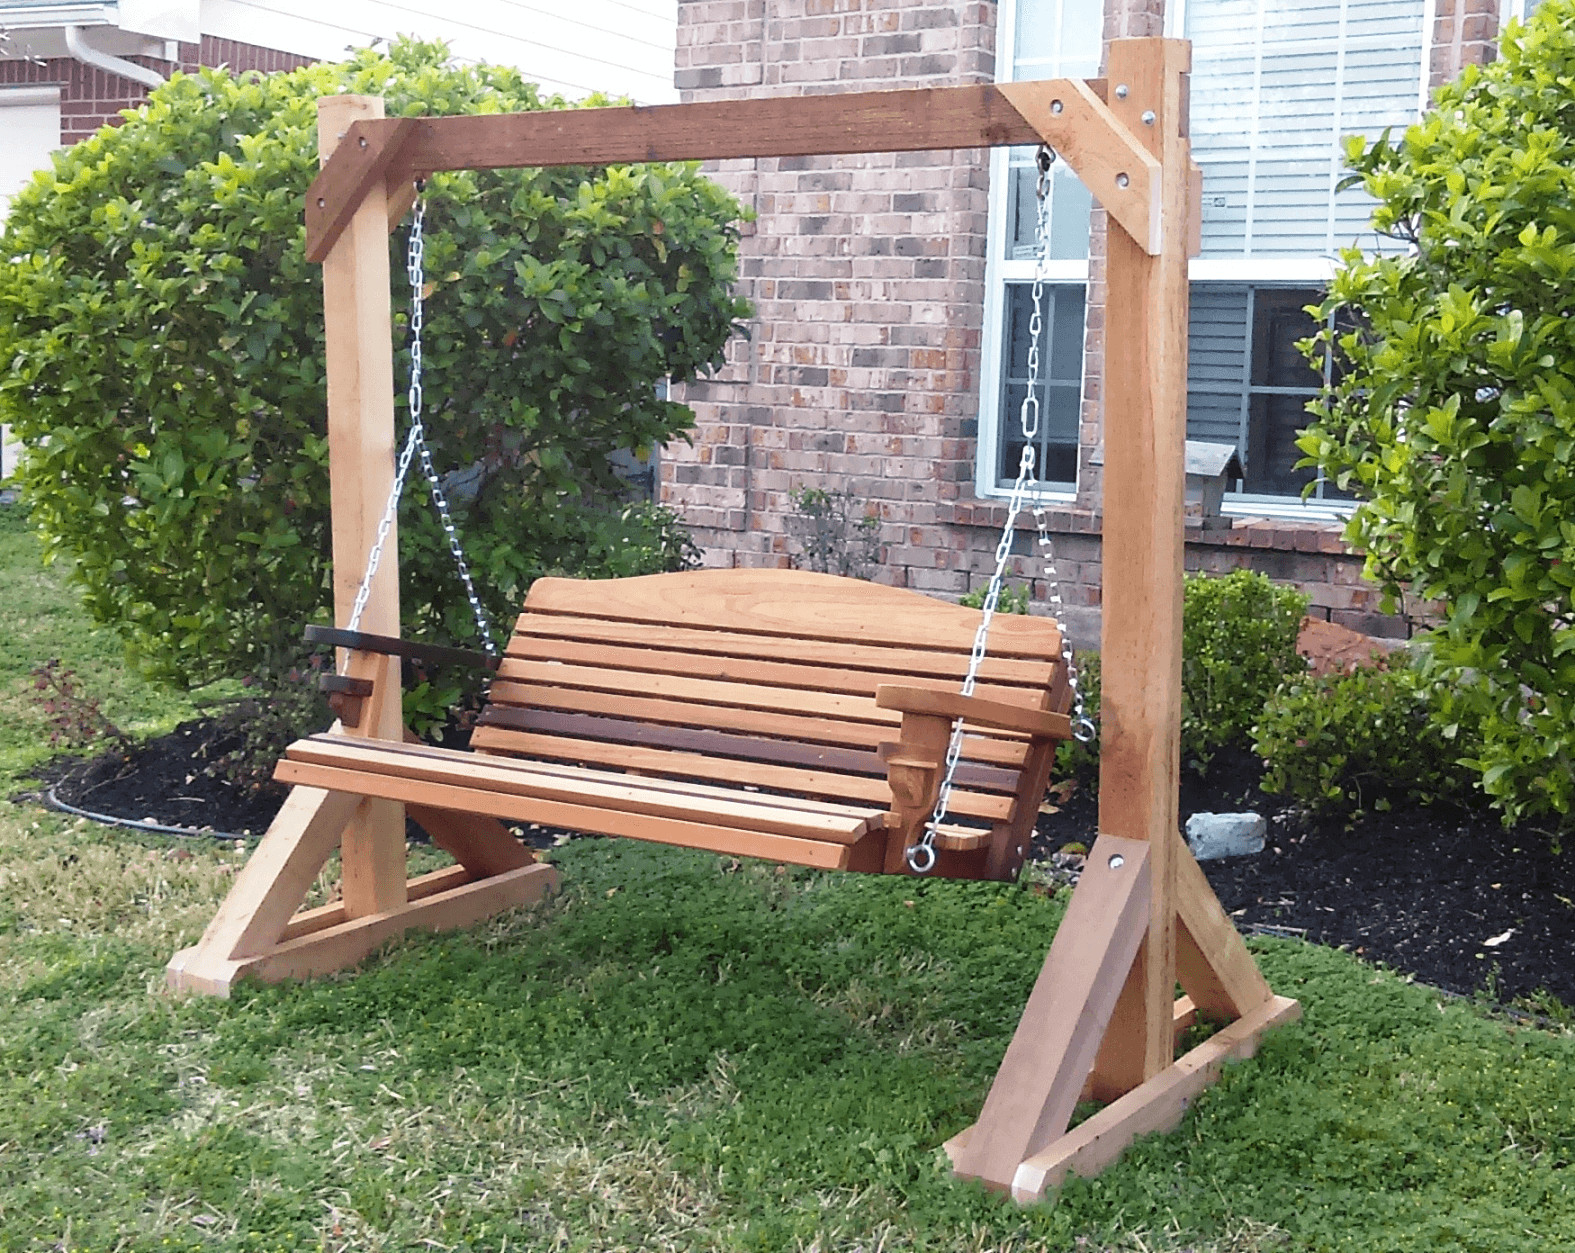 DIY Porch Swing Plans  Simple Tips to Build DIY Wood Porch Swing Frame Plans